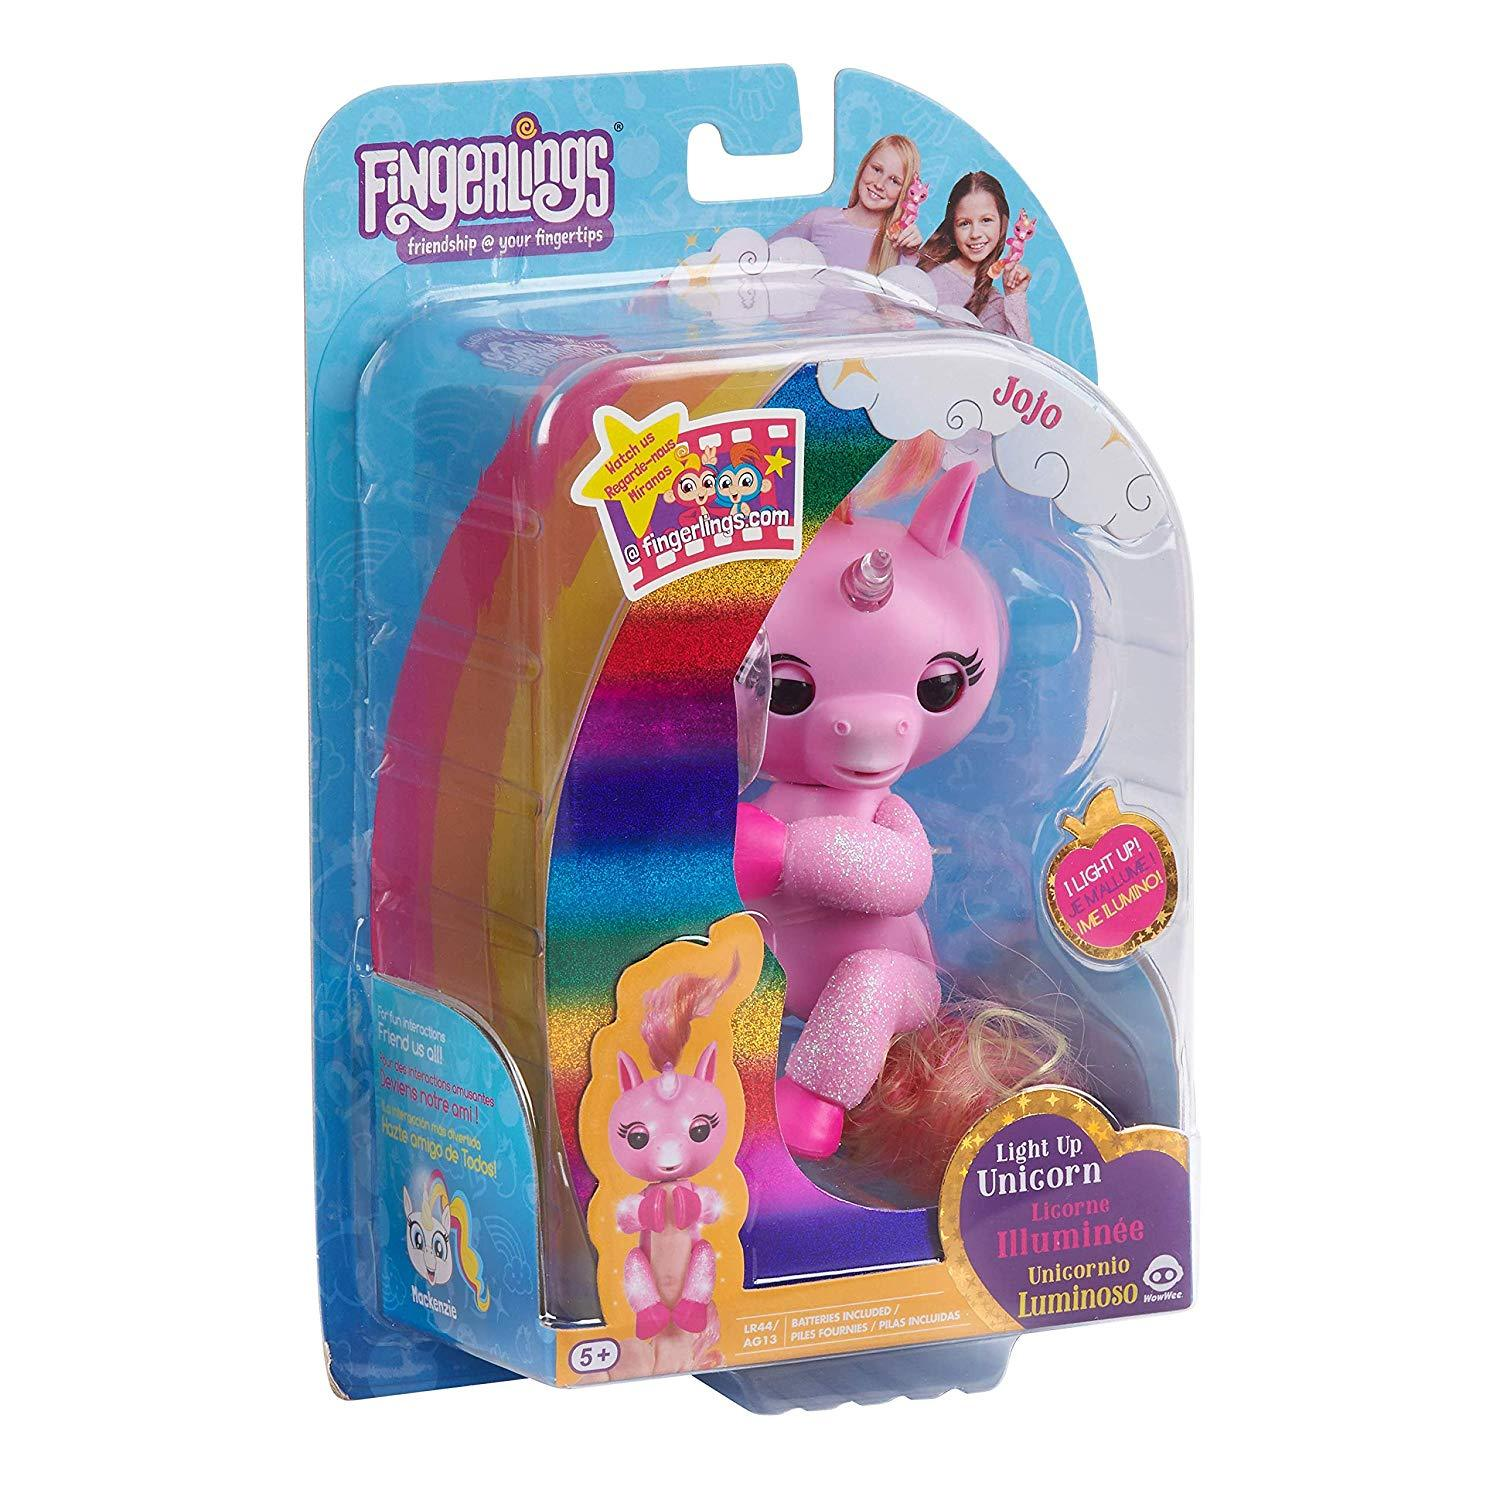 WowWee Fingerlings Light Up Glitter Unicorn, Jojo Interactive Collectible Baby P